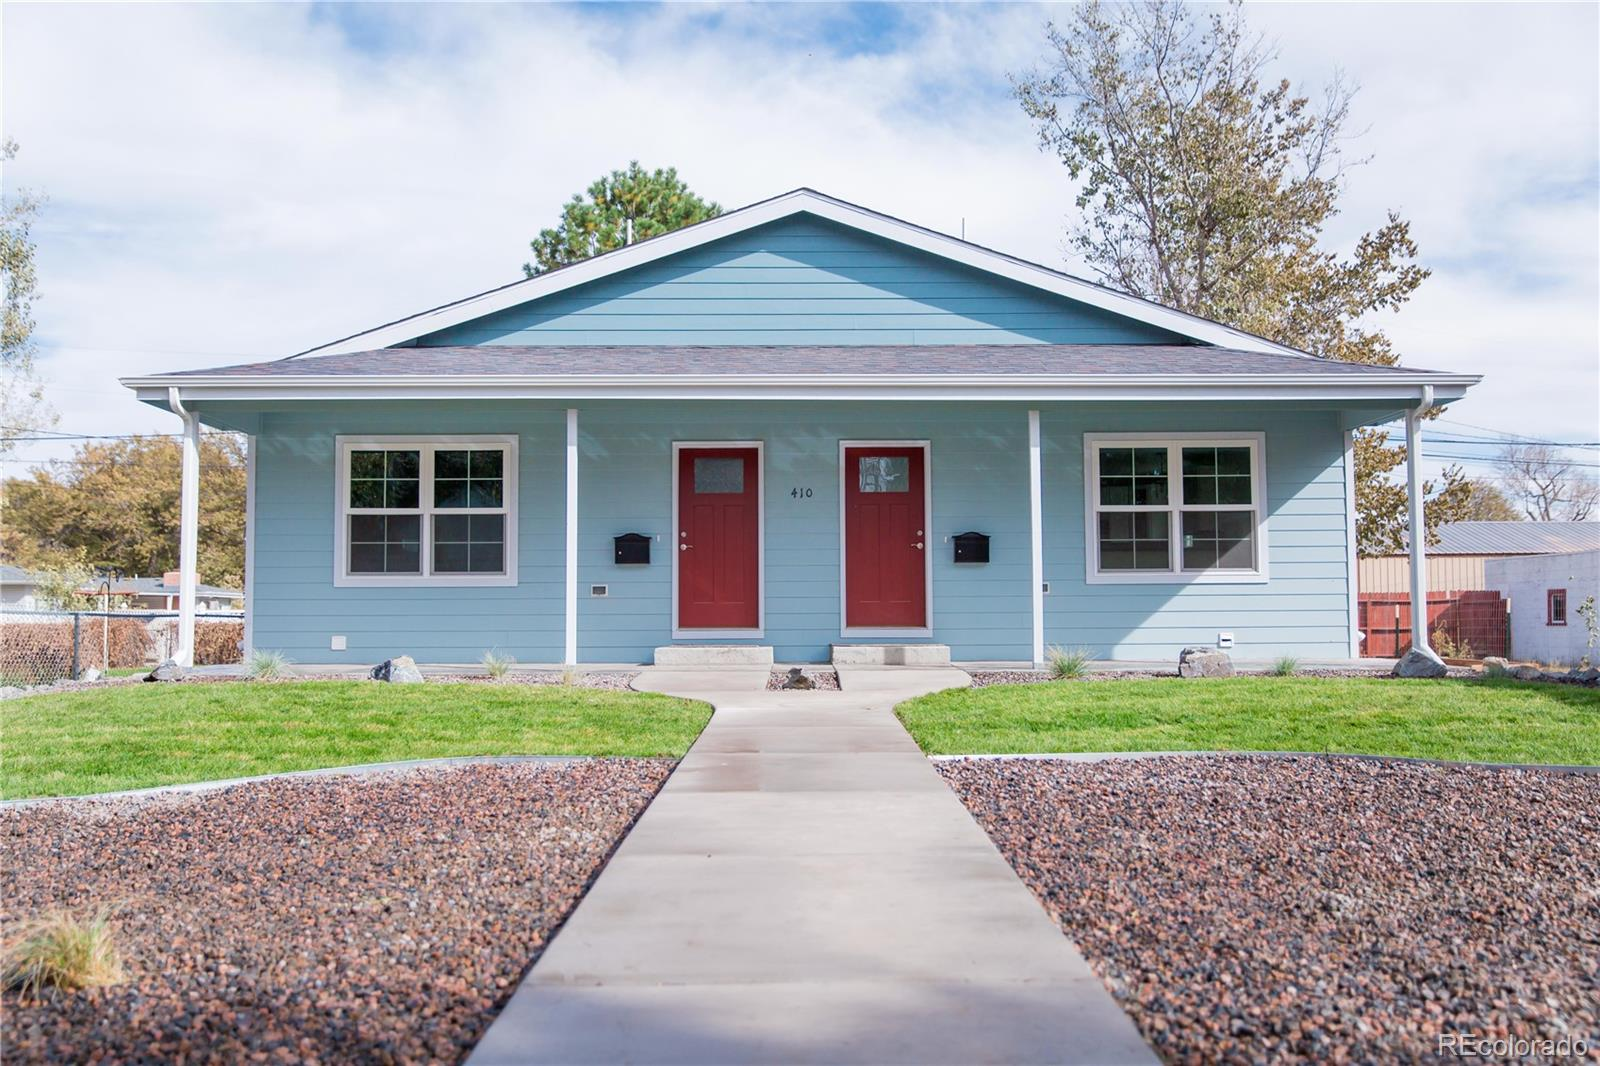 410 Maple Street, Fort Morgan, CO 80701 - Fort Morgan, CO real estate listing